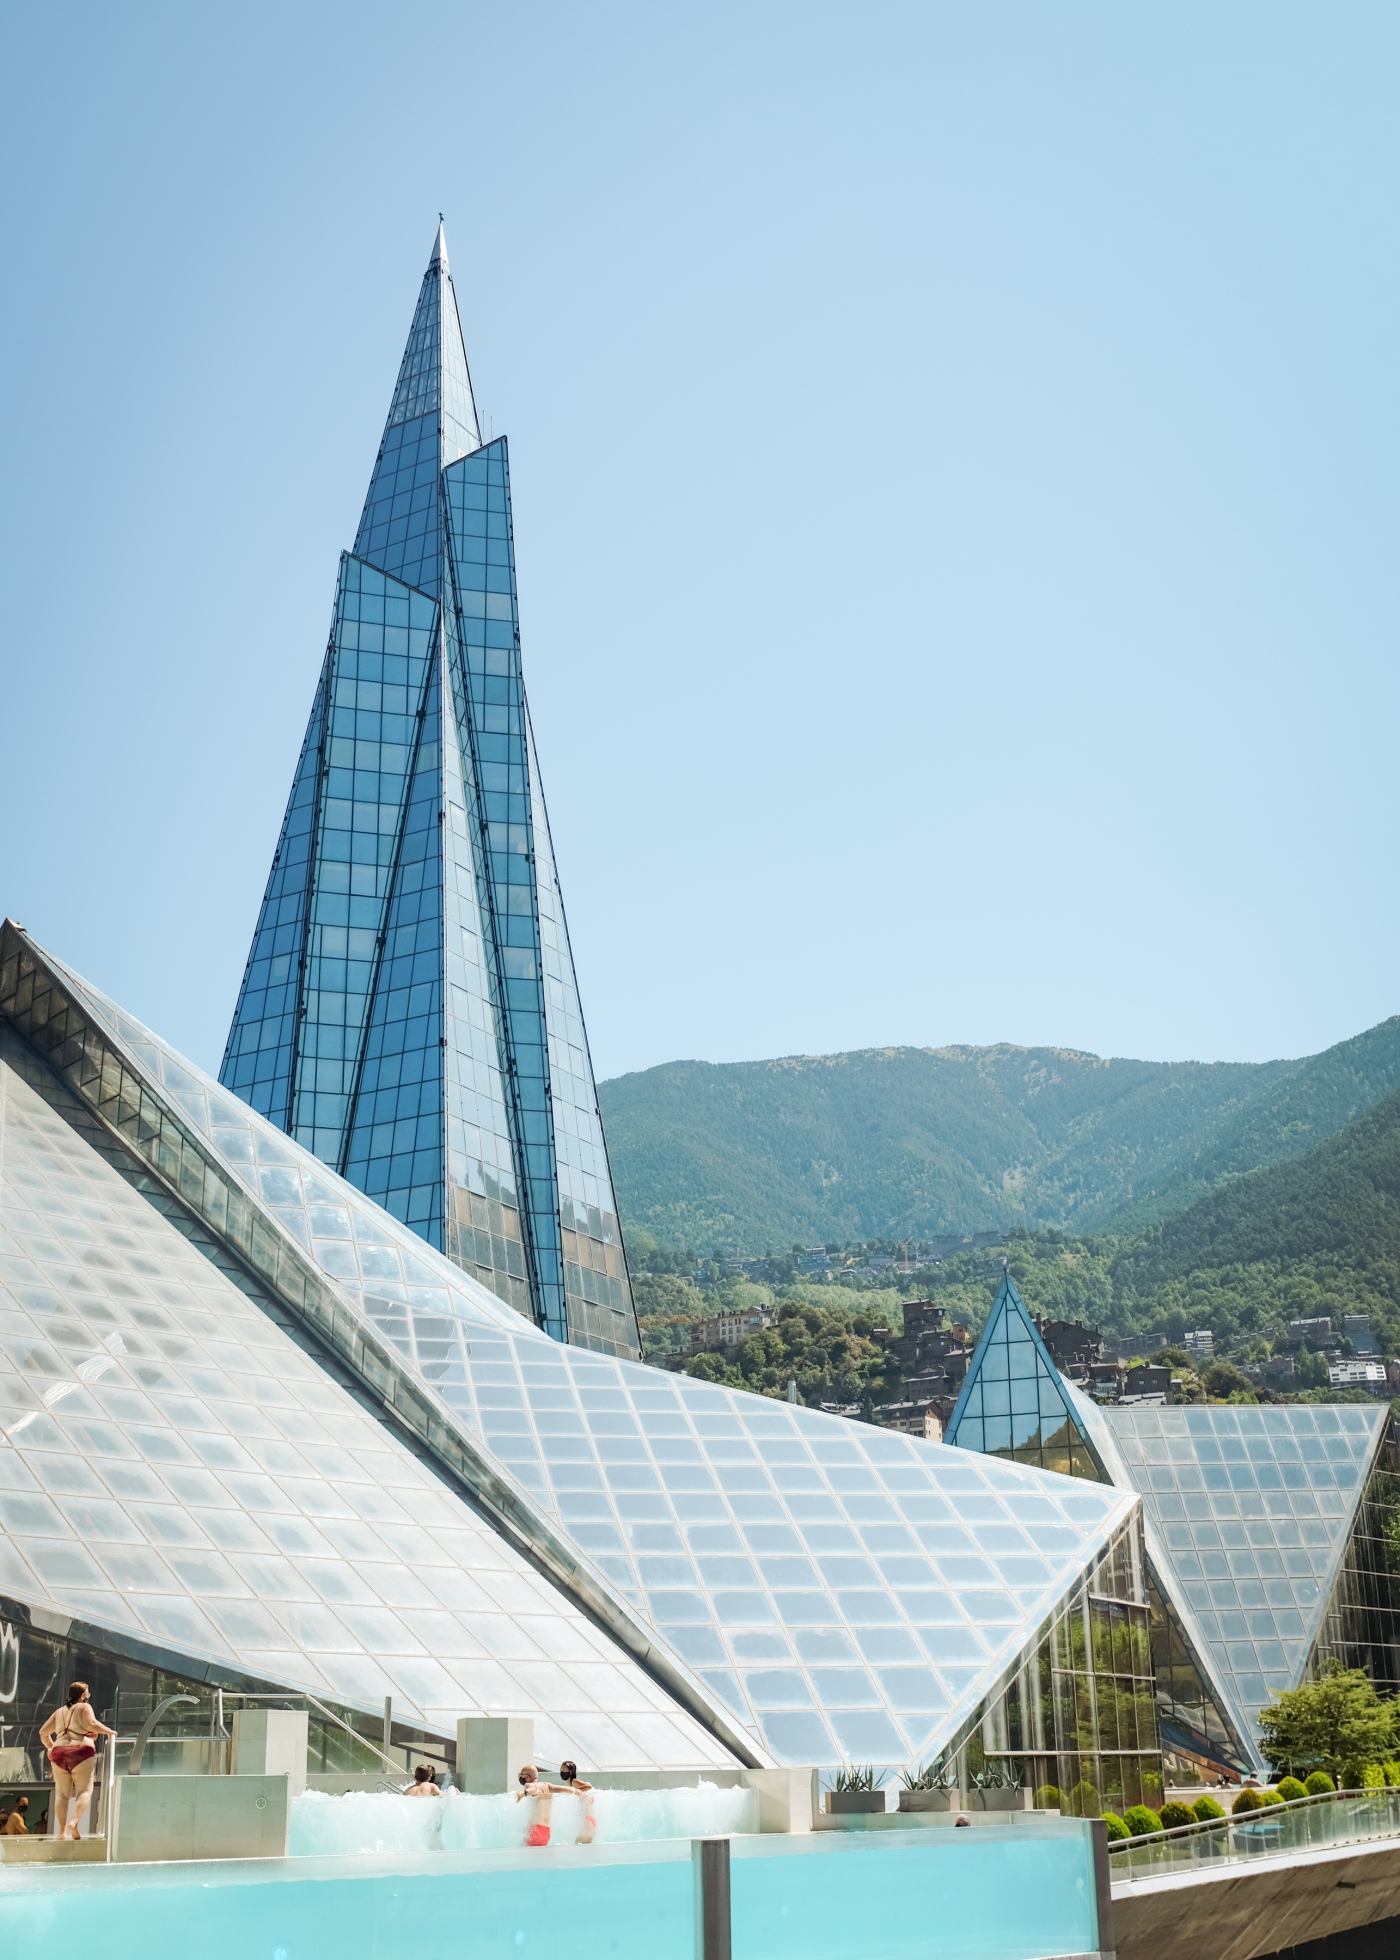 A tall, glassy spire behind a thermal spa complex